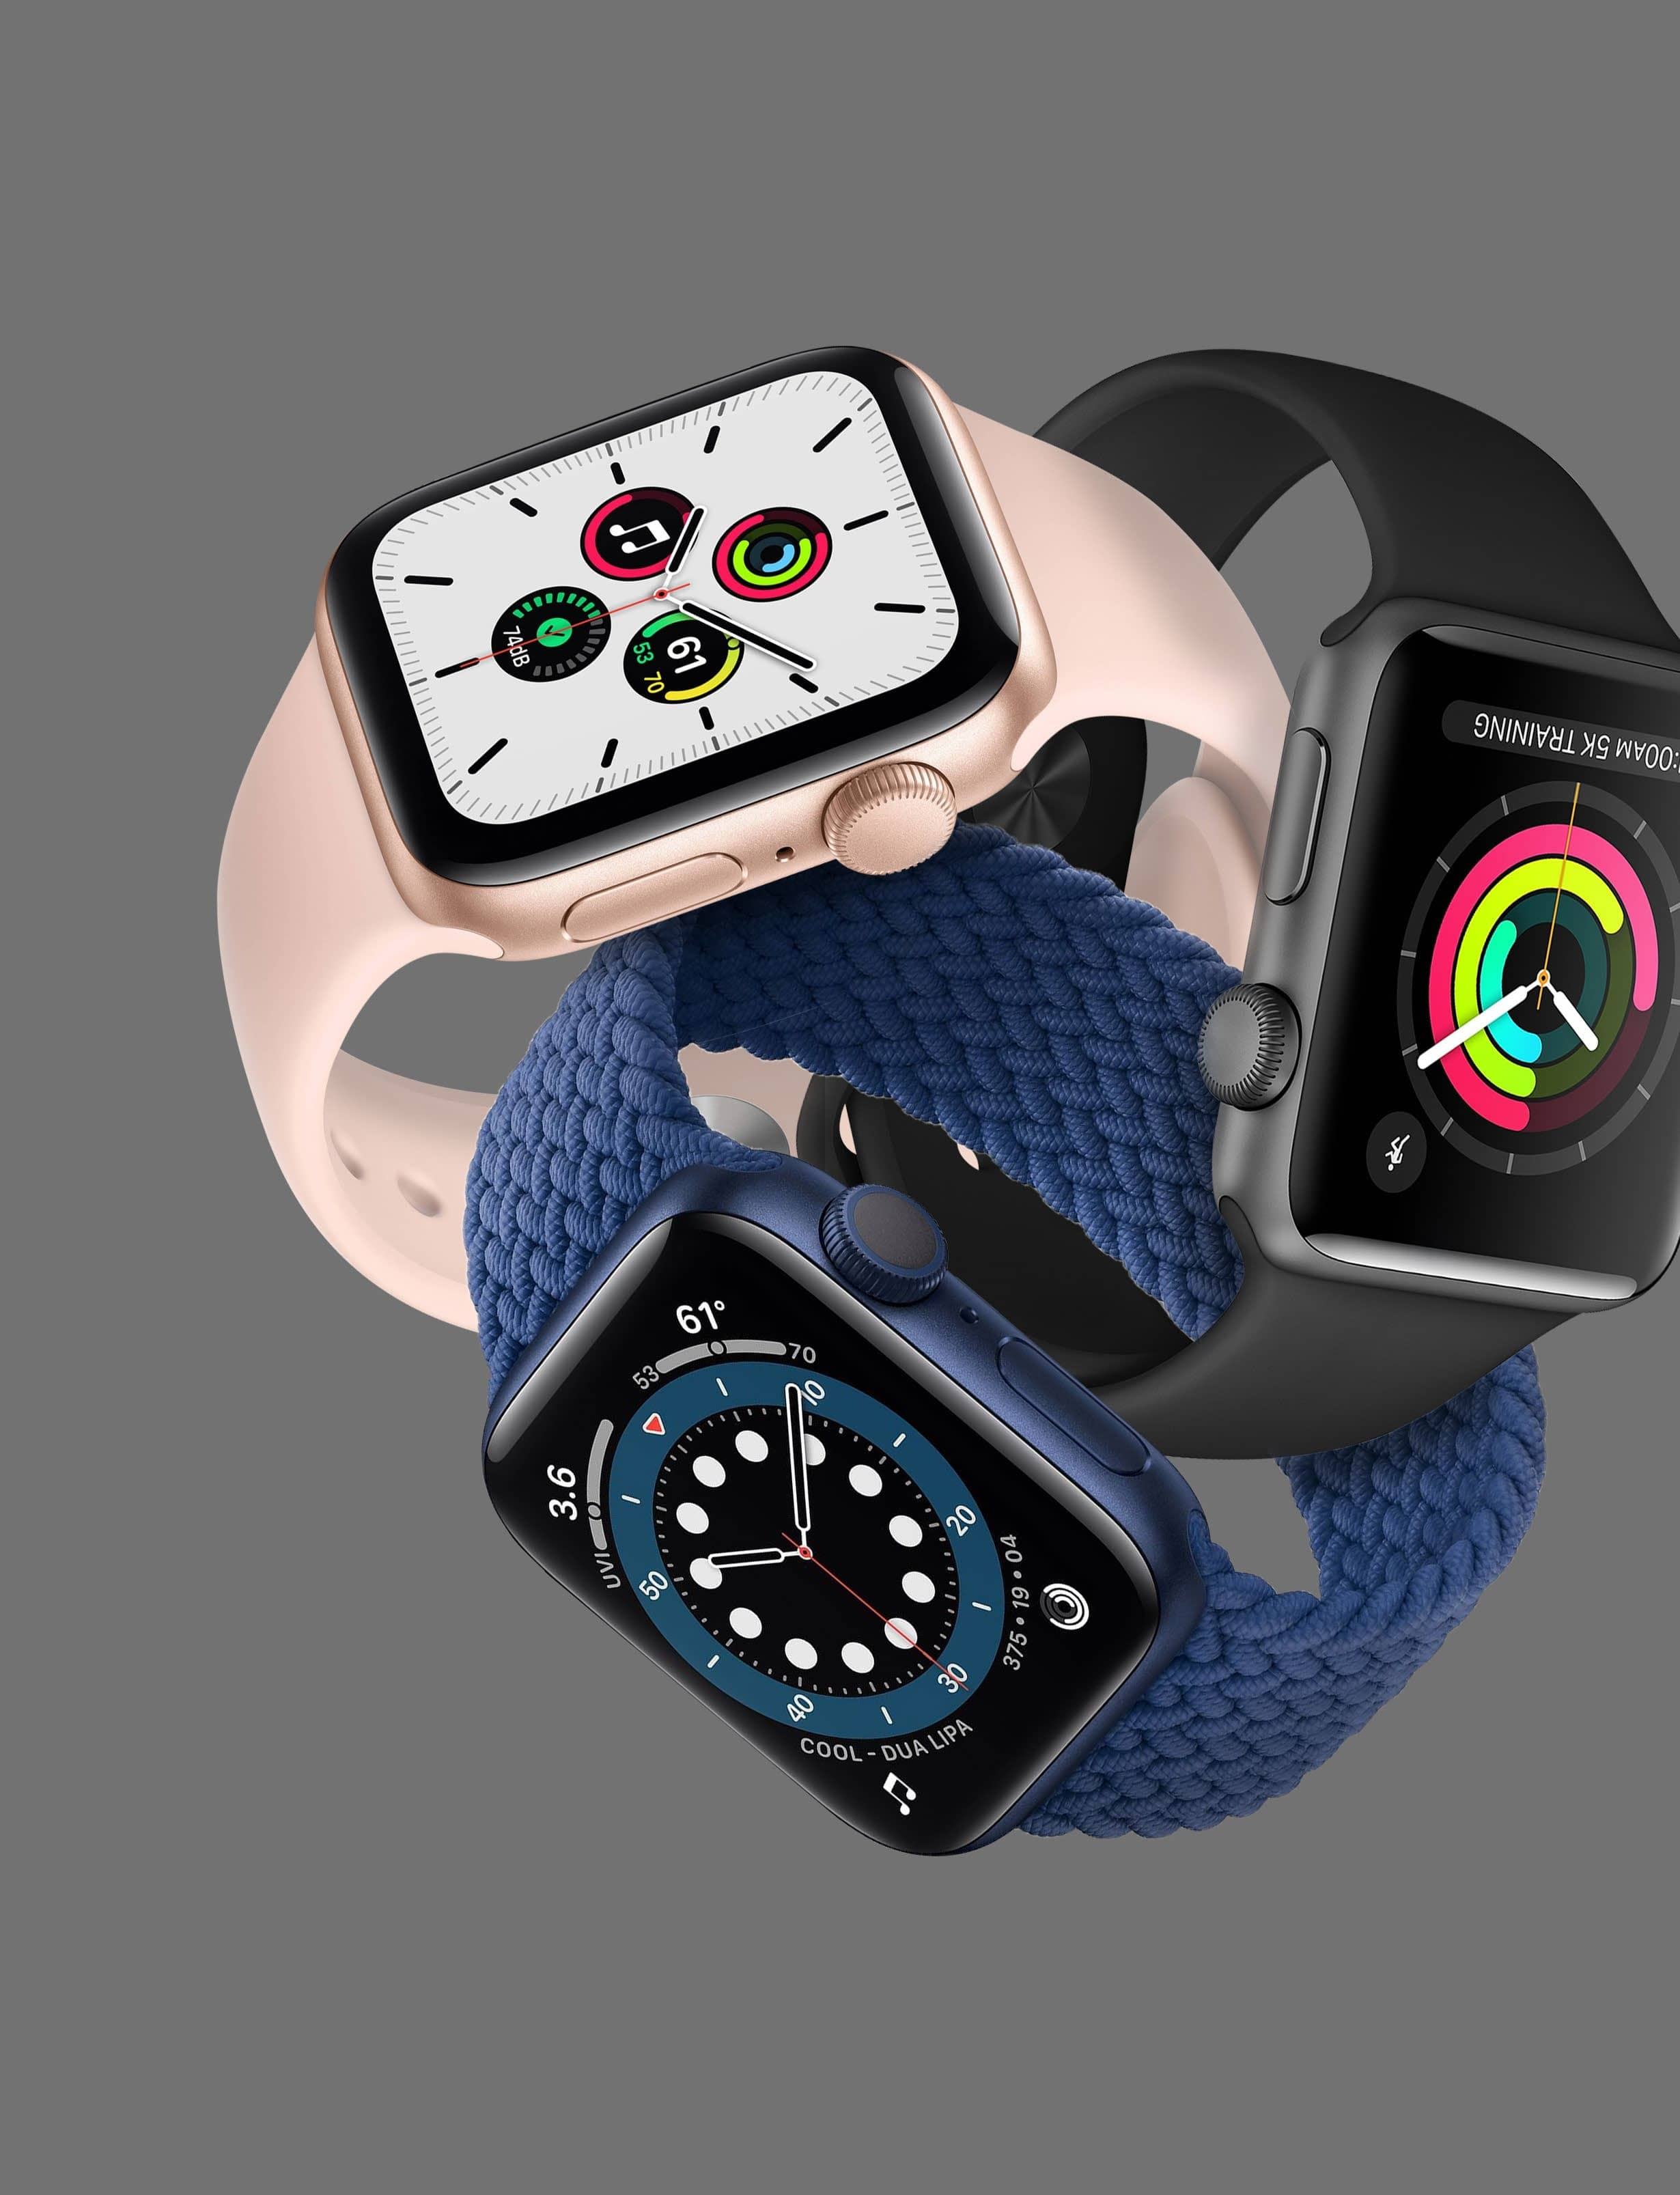 WHICH MODEL IS RIGHT FOR YOUR WRIST? APPLE WATCH SERIES 3 VS SE VS SERIES 6